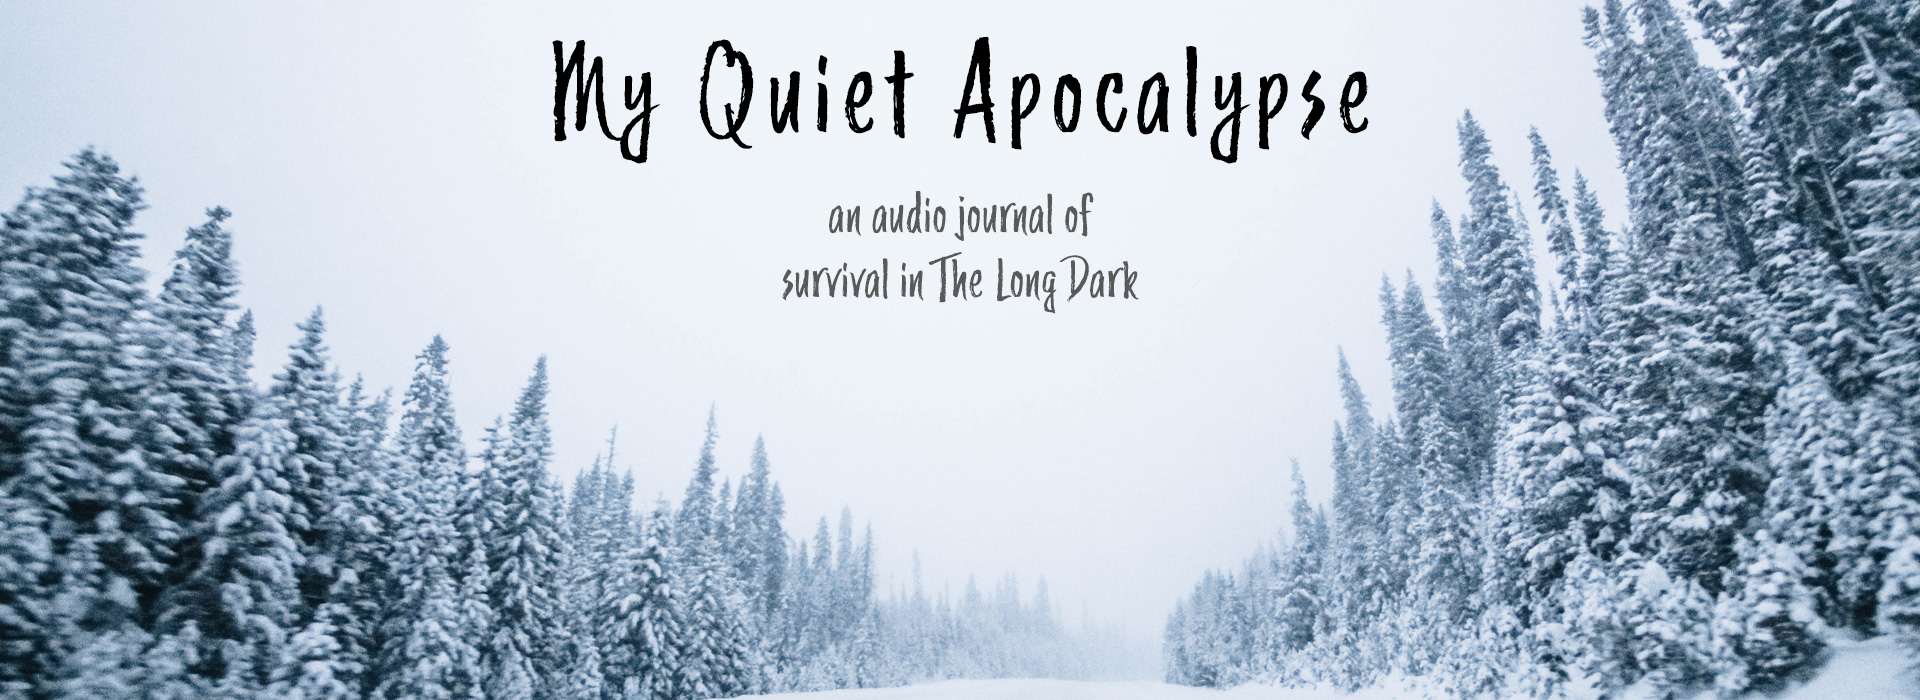 My Quiet Apocalypse